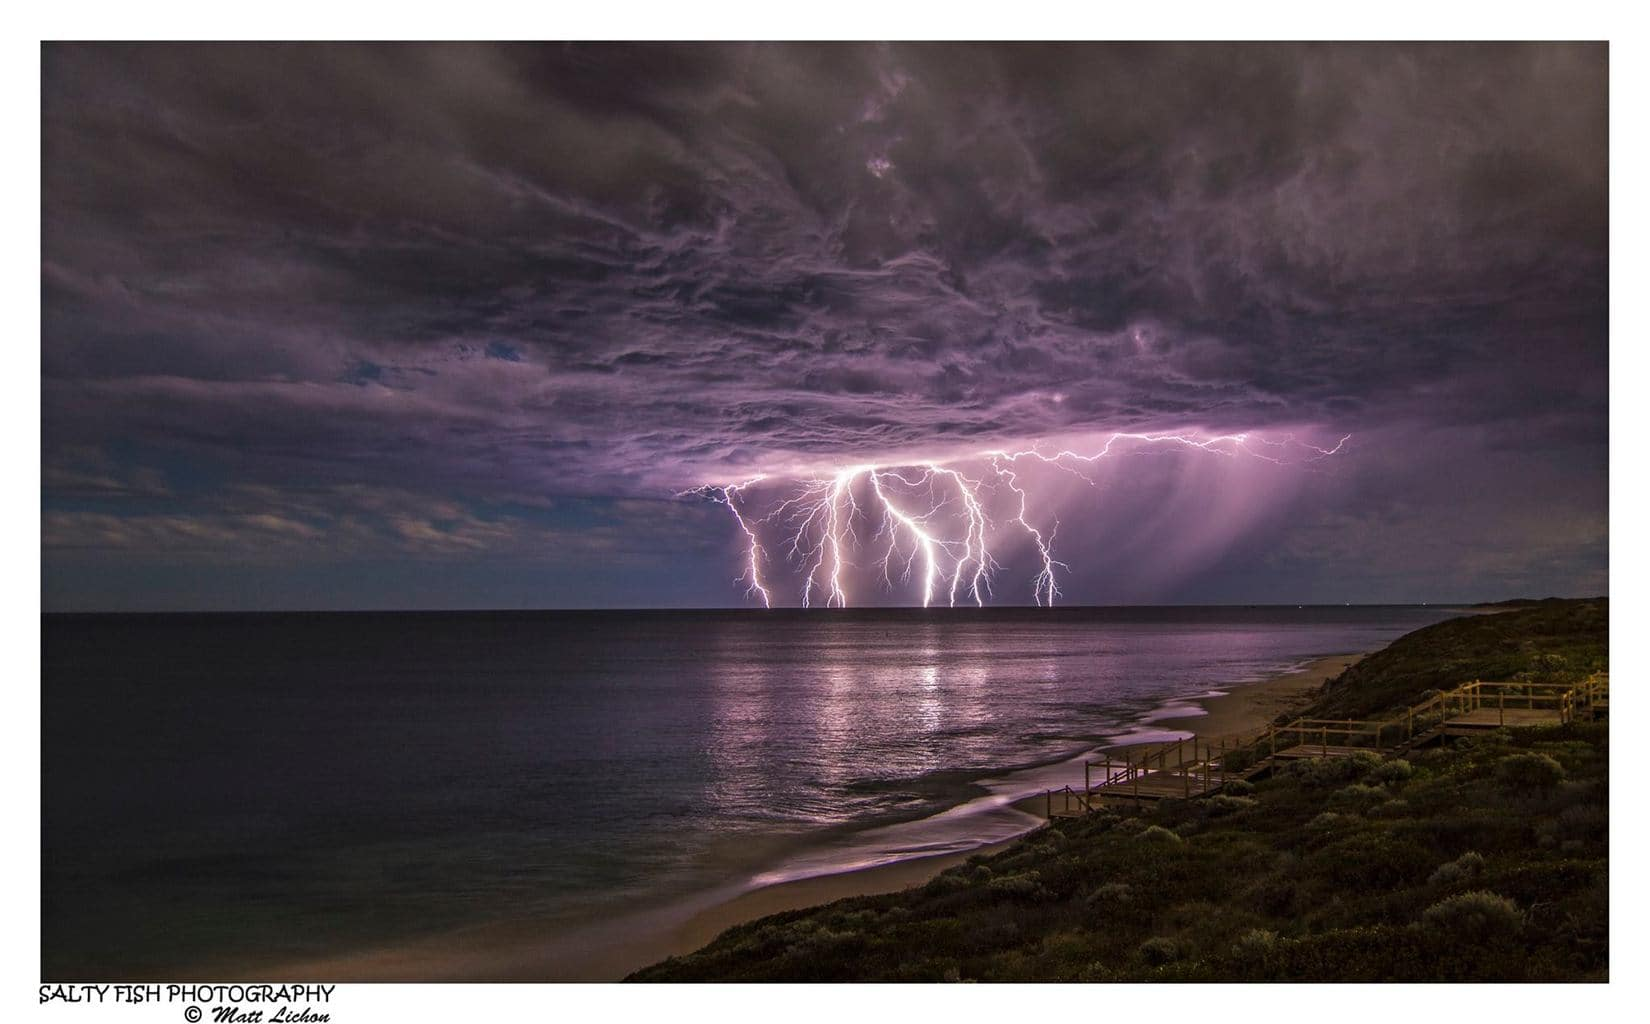 Here is my favorite single exposure from recent Perth storms! ISO 100, f8, 30 seconds, at 16mm.